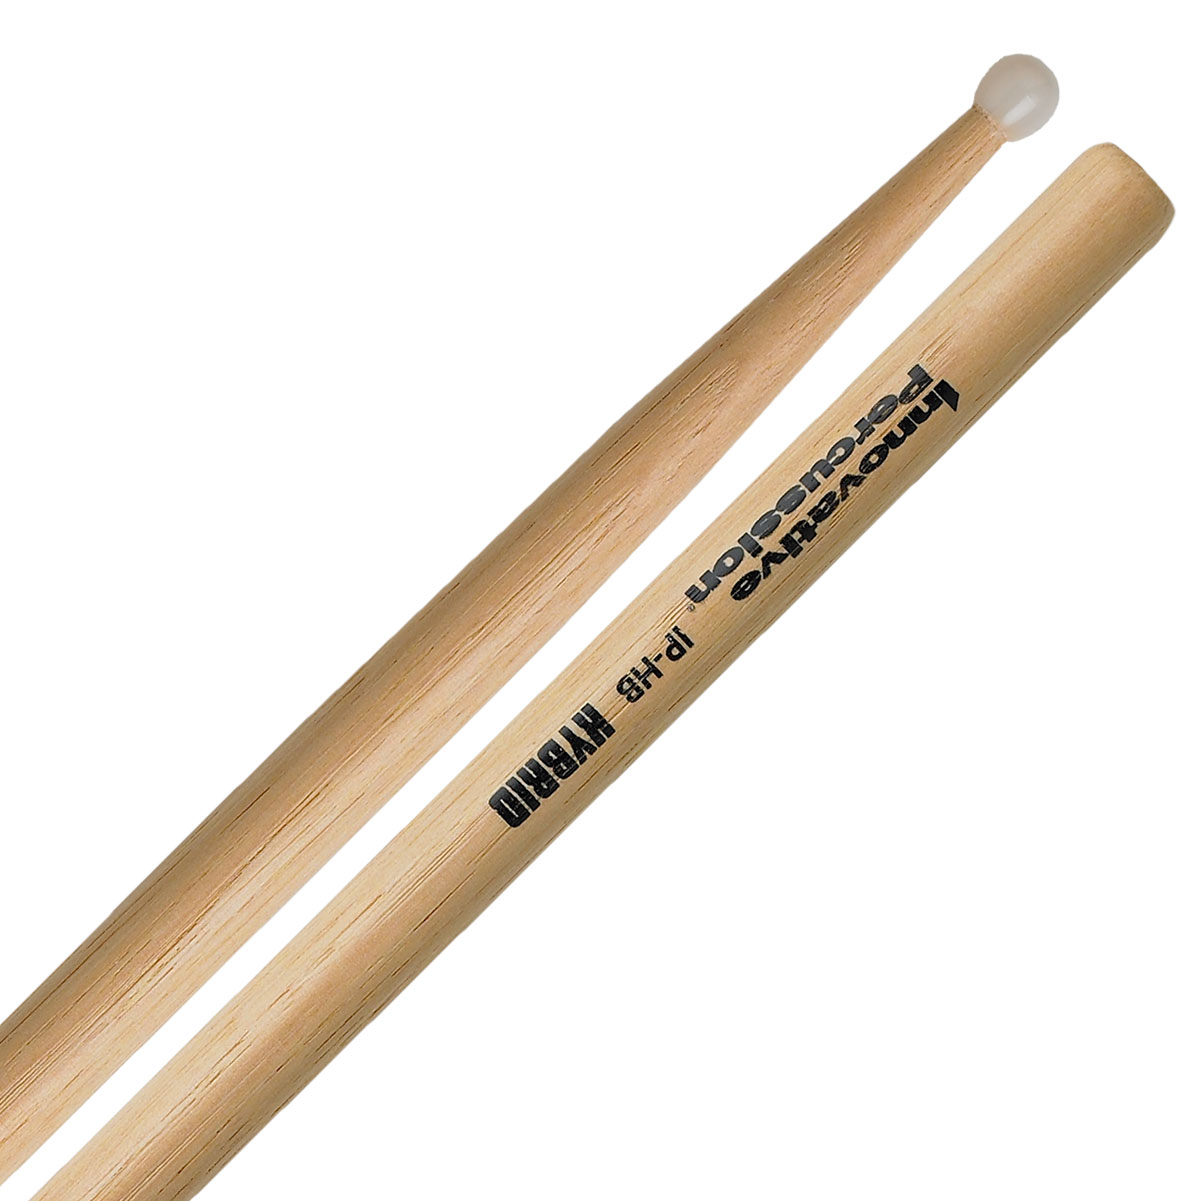 Innovative Percussion Hybrid Nylon Tip Drumsticks